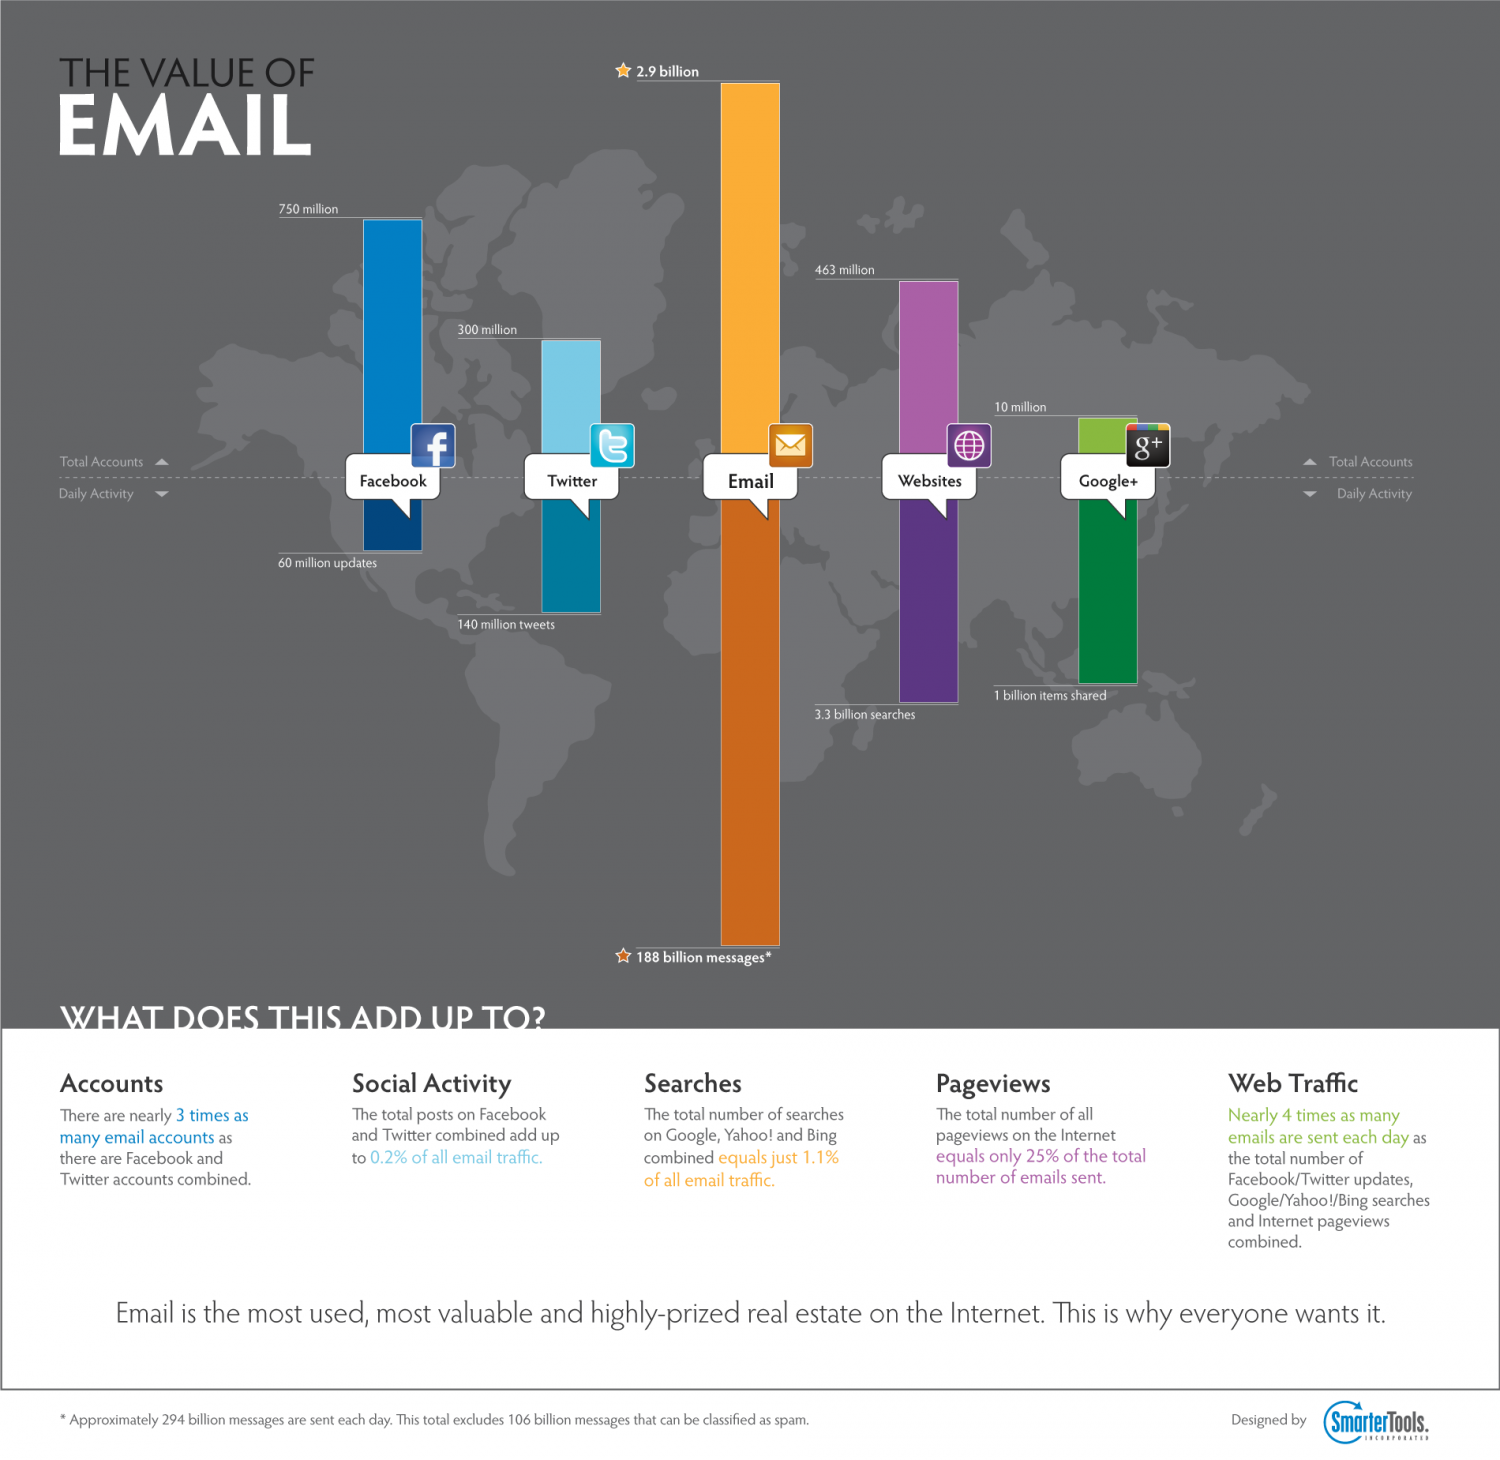 The Value of Email Infographic